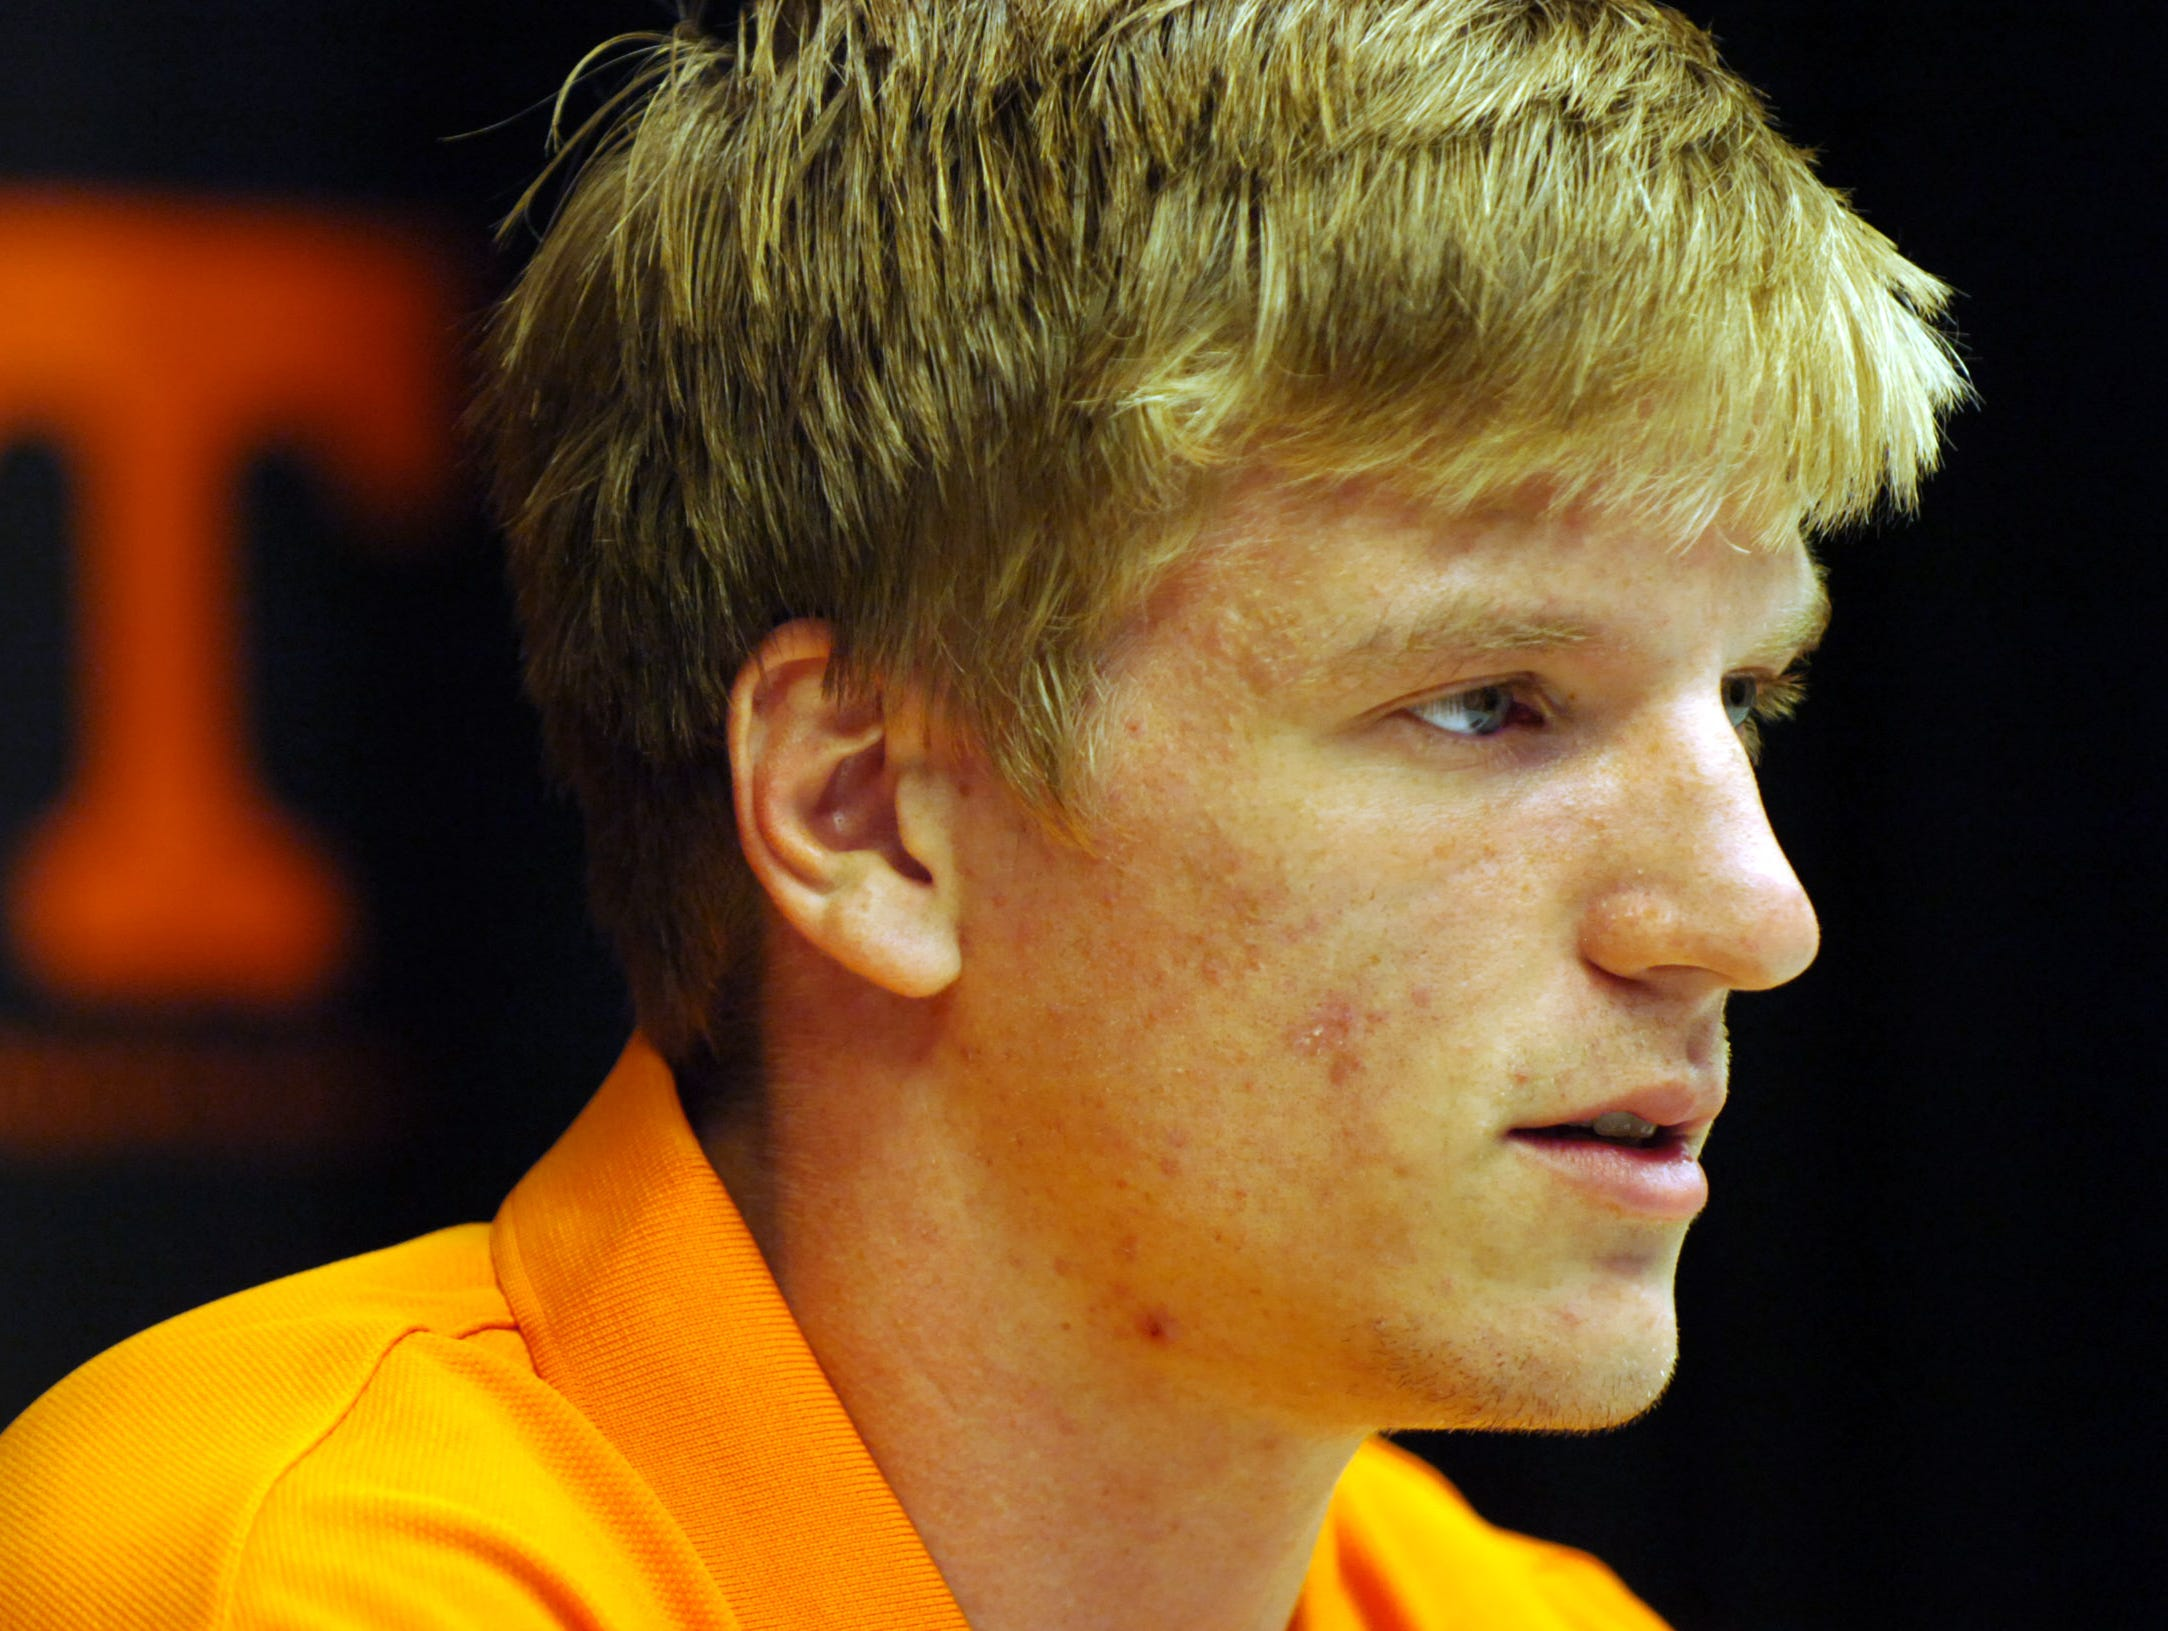 Junior quarterback Matt Simms speaks to the media during a press conference at the Stokely Family Media Center inside Neyland Stadium on Tuesday, Aug. 3, 2010. The Volunteers have their first fall practice under head coach Derek Dooley at Haslam Field on Wednesday.